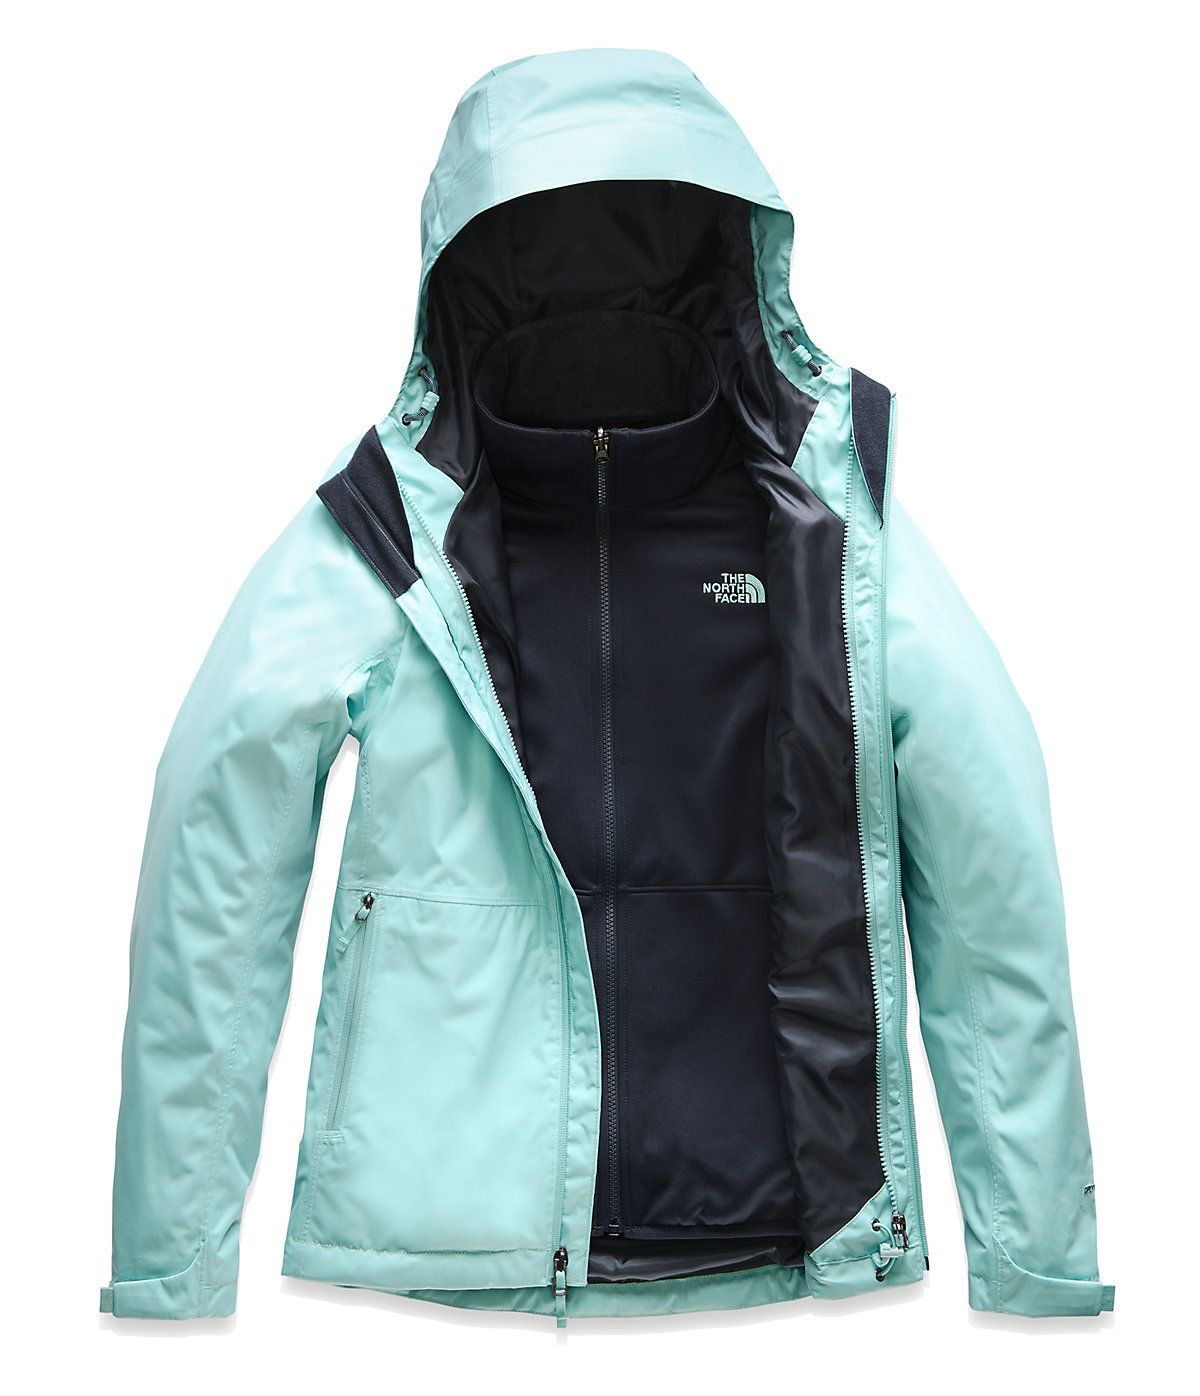 Women S Arrowood Triclimate Jacket The North Face In 2021 Triclimate Jacket North Face Jacket Jackets [ 1396 x 1200 Pixel ]